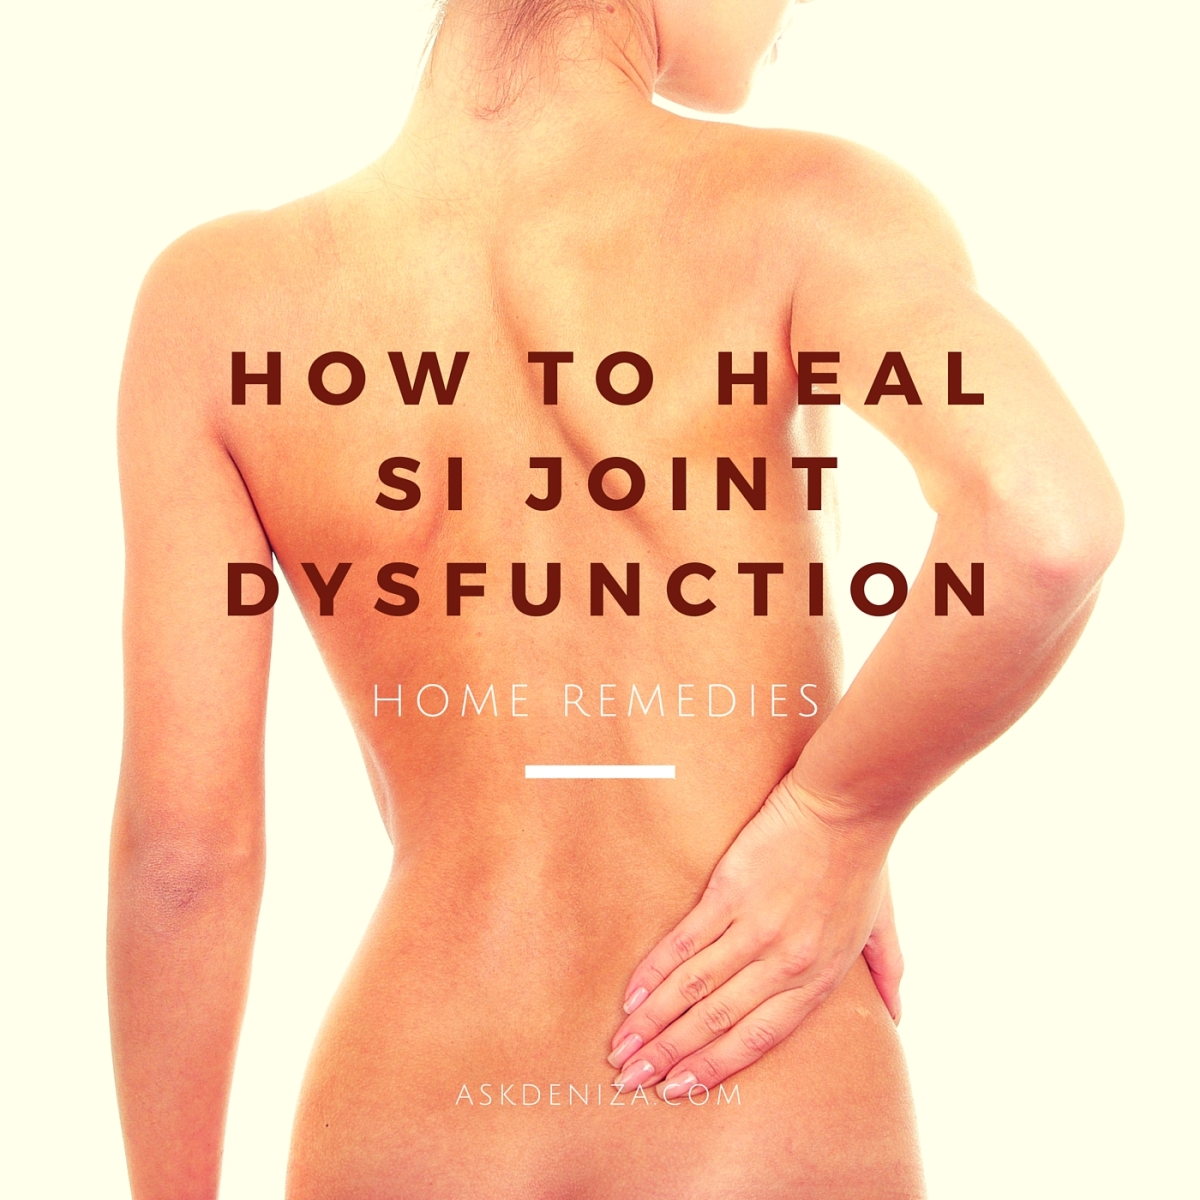 Home remedies for SI joint dysfunction